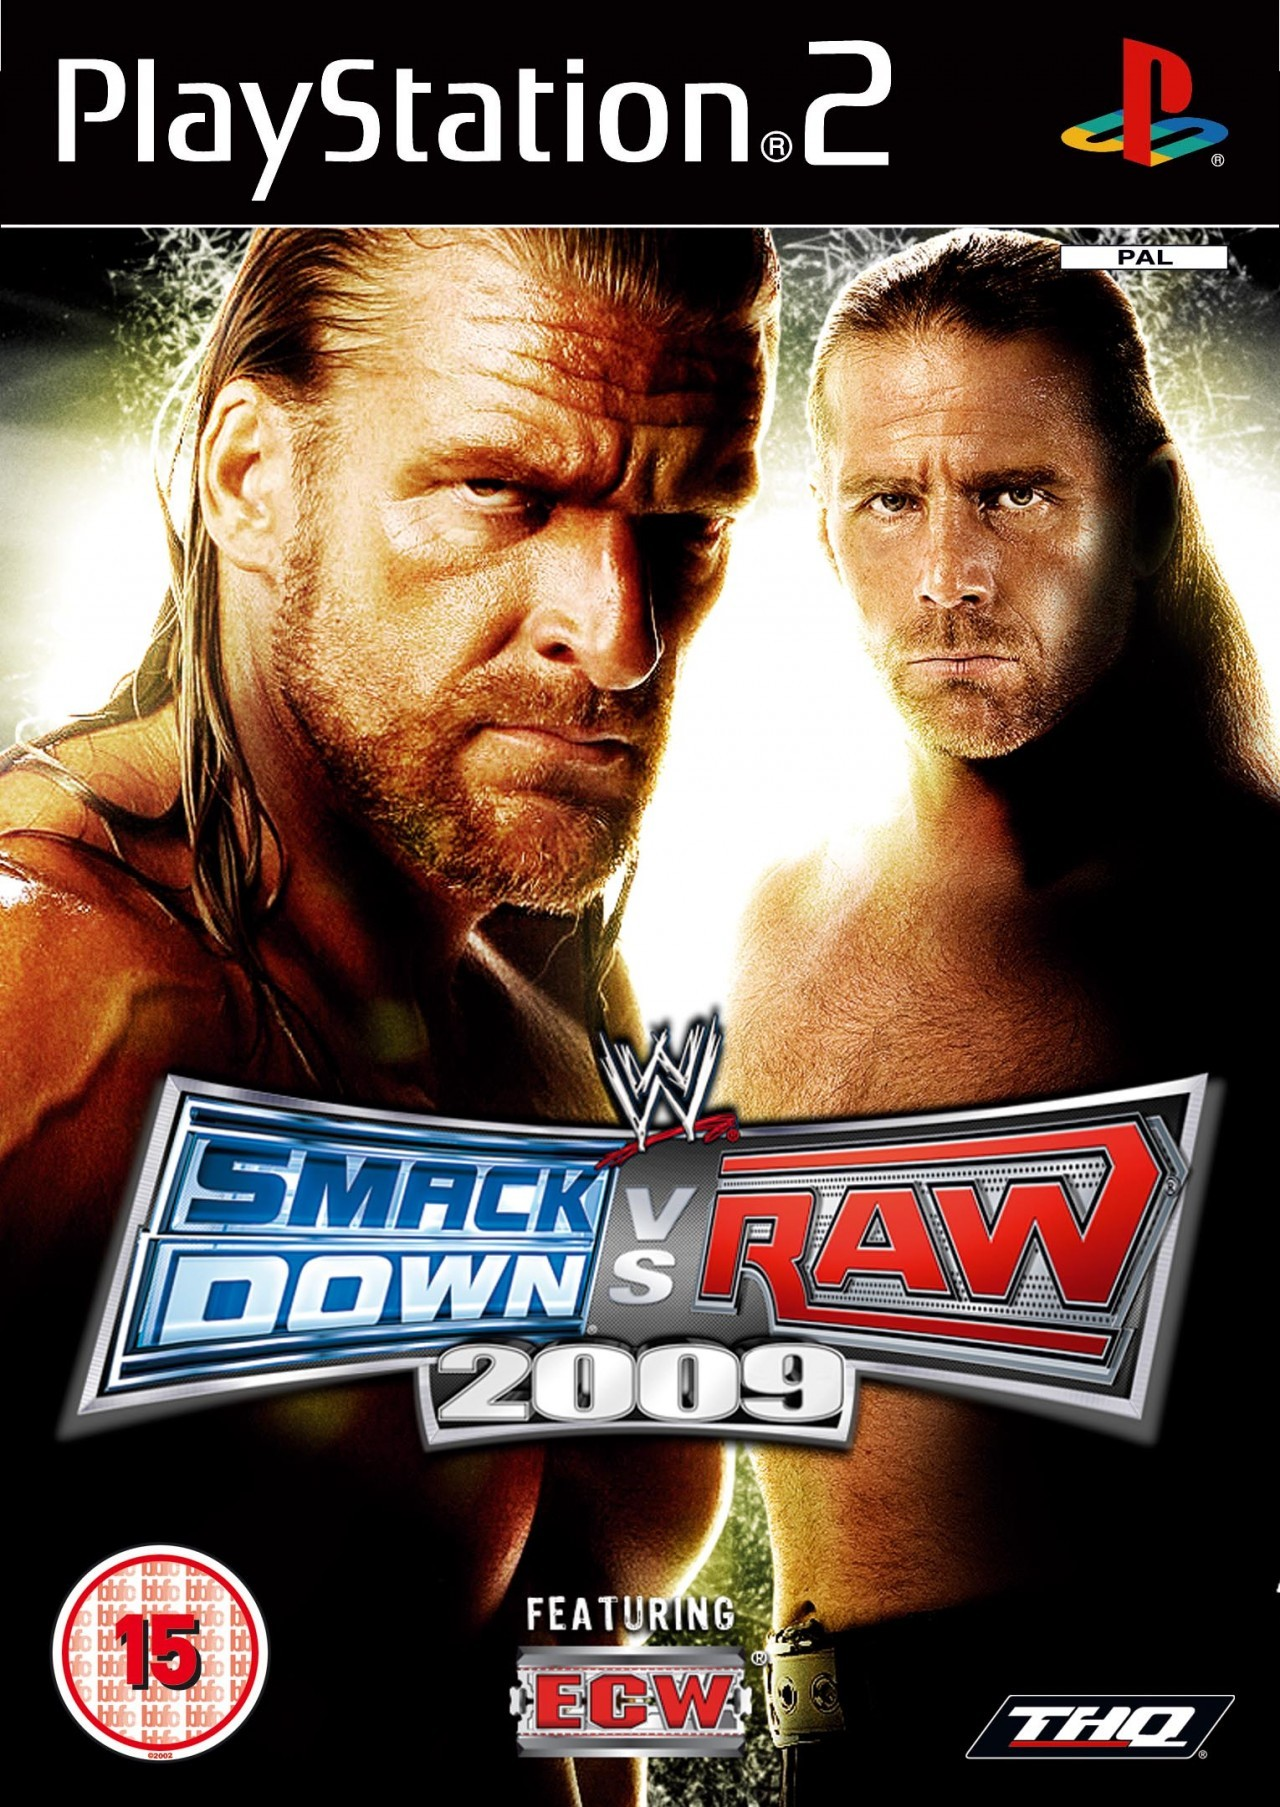 Rom juego WWE SmackDown Vs. RAW 2009 Featuring ECW